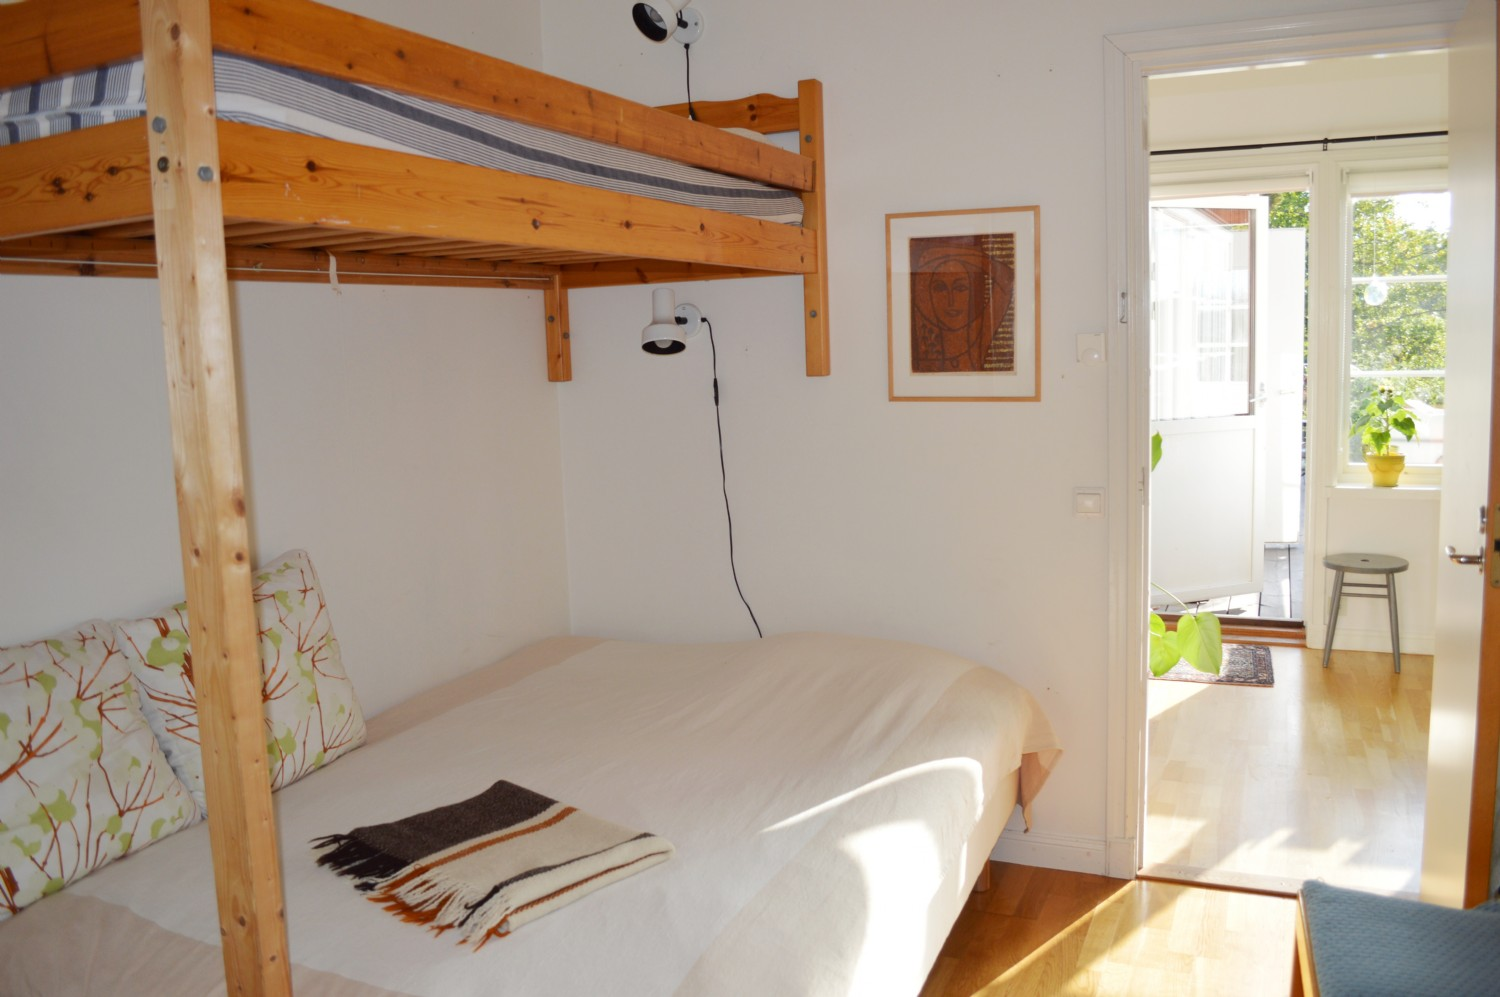 Sovrum 2/ Bed room 2